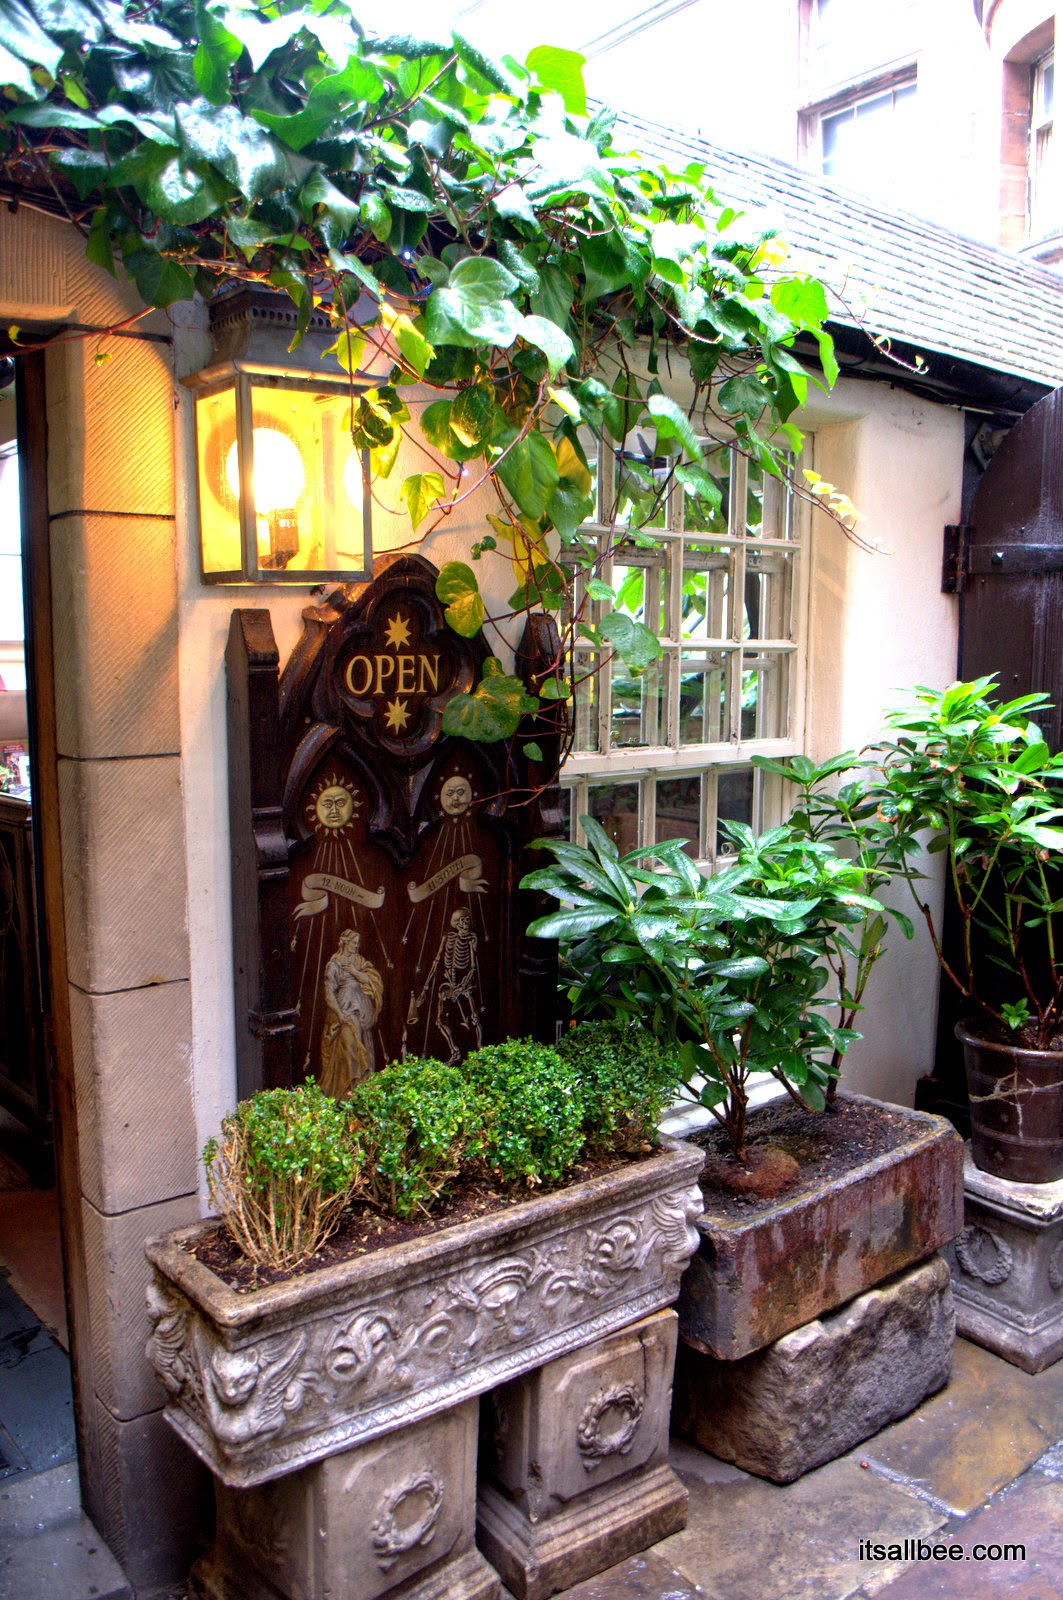 Witchery in Edinburgh - The Witchery by the Castle